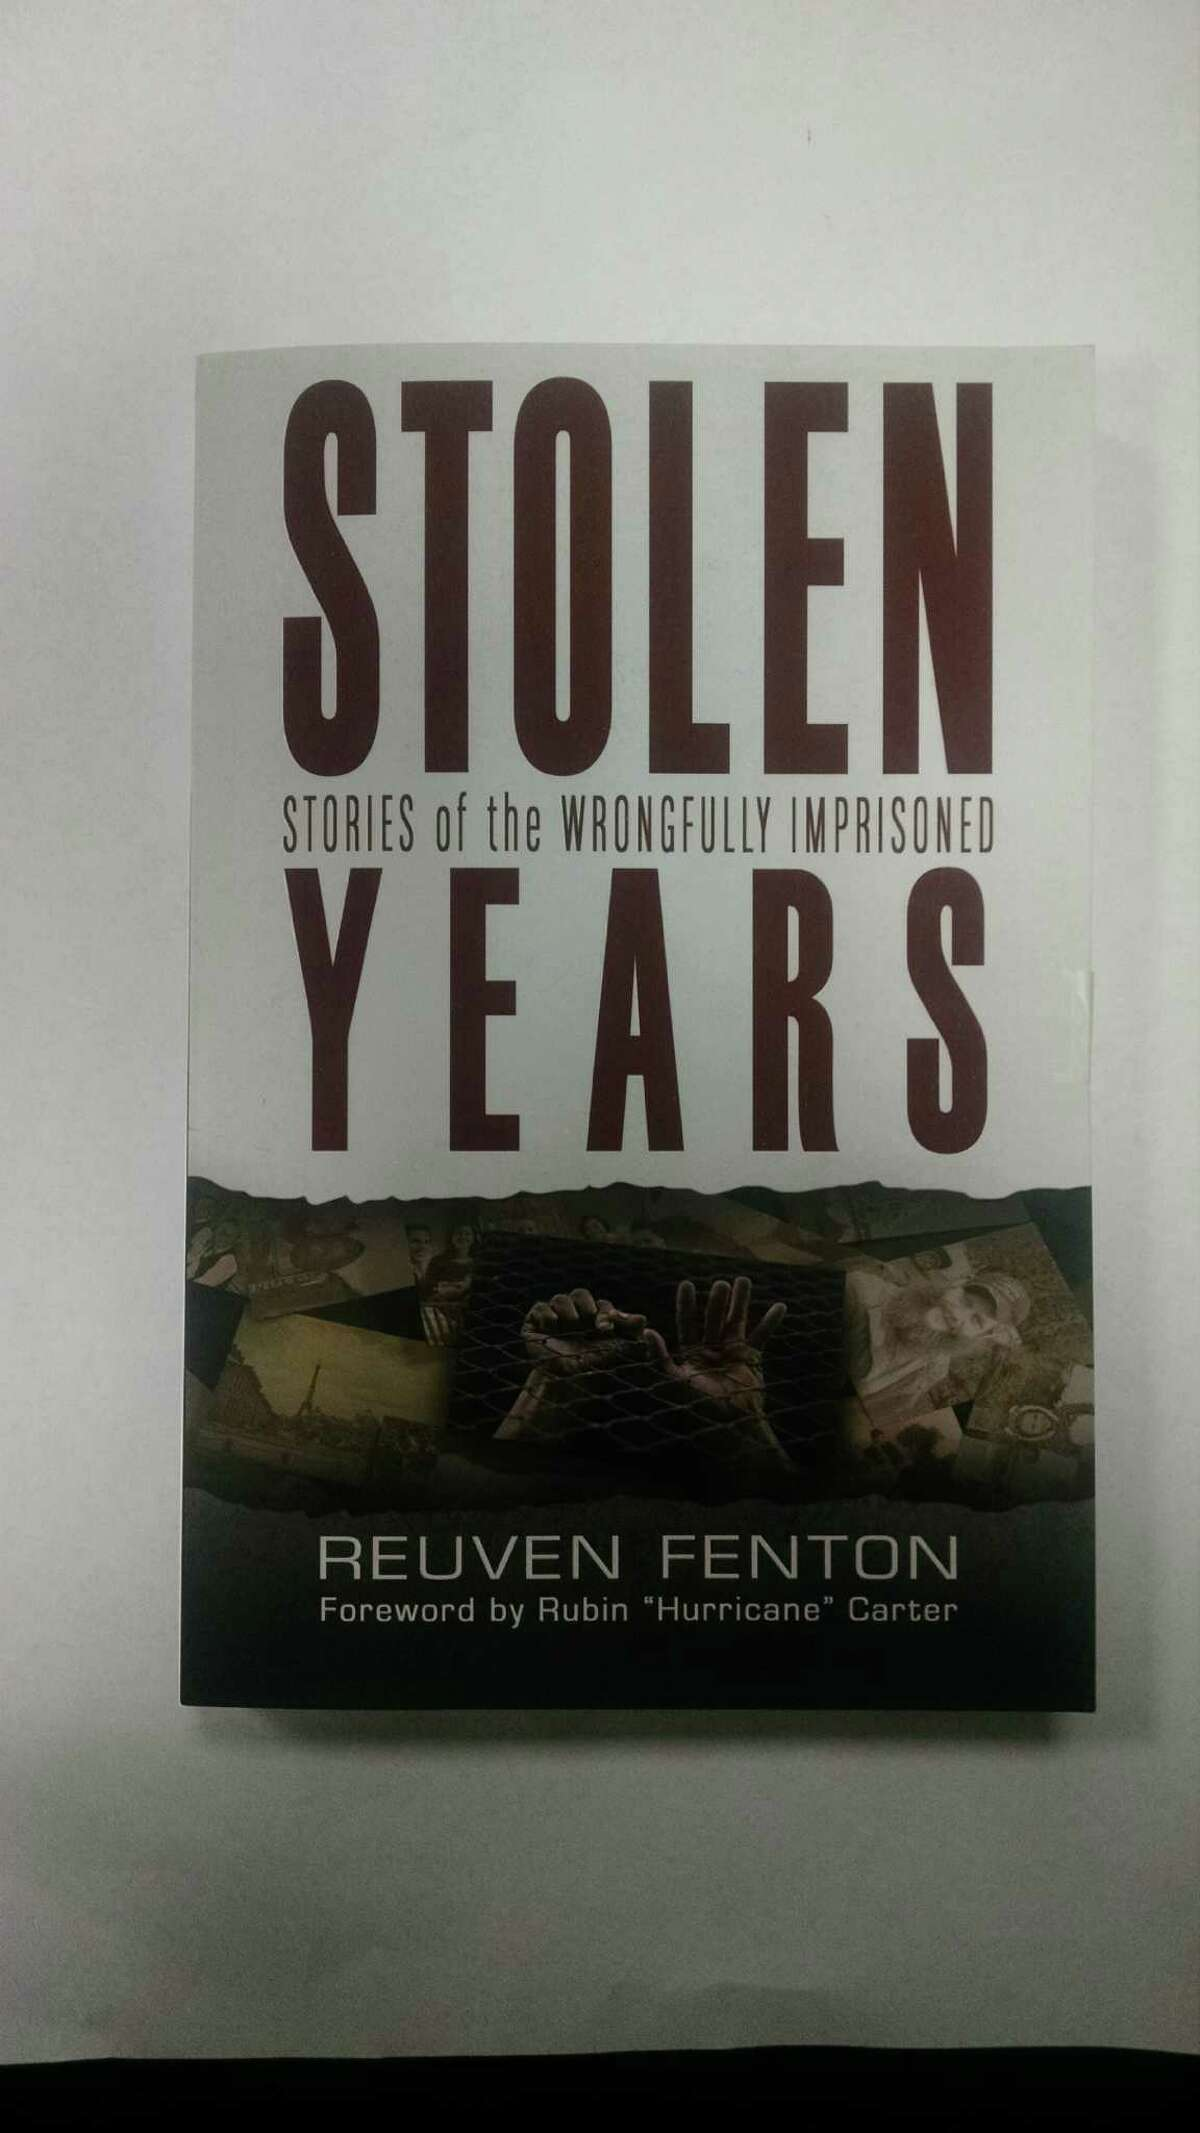 The author, Reuven Fenton, is a New York Post reporter.